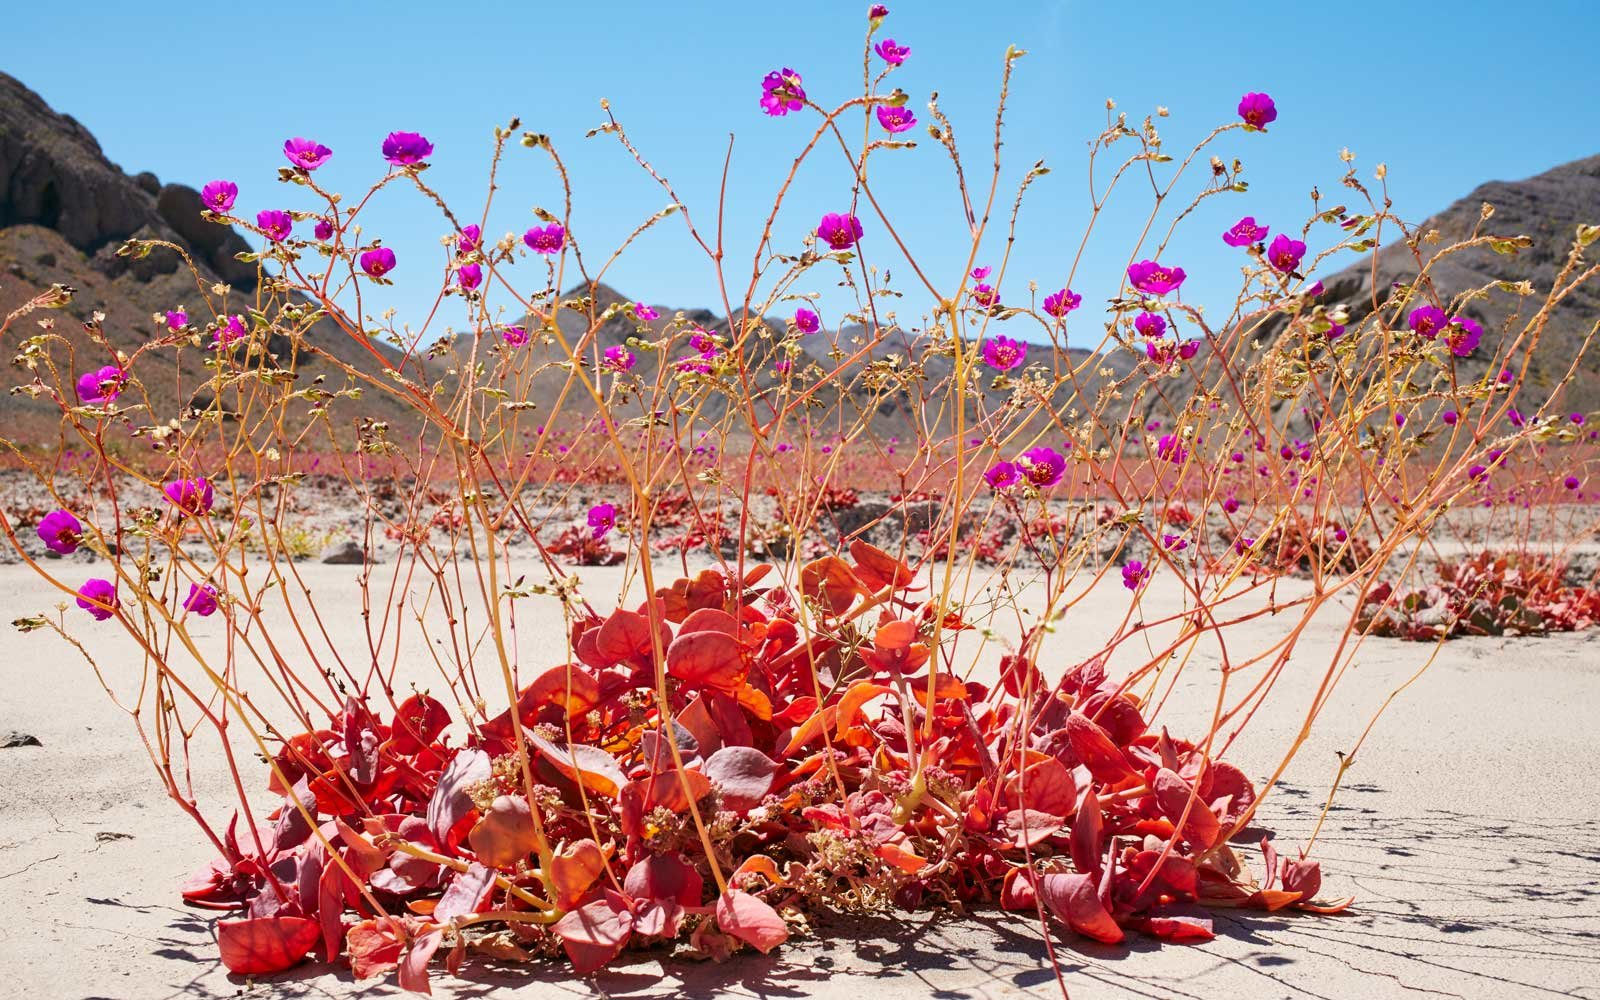 Chile s Atacama Desert is Once Again Covered in Wildflower Blooms     Rare Blooming of Desert Flowers in Chile